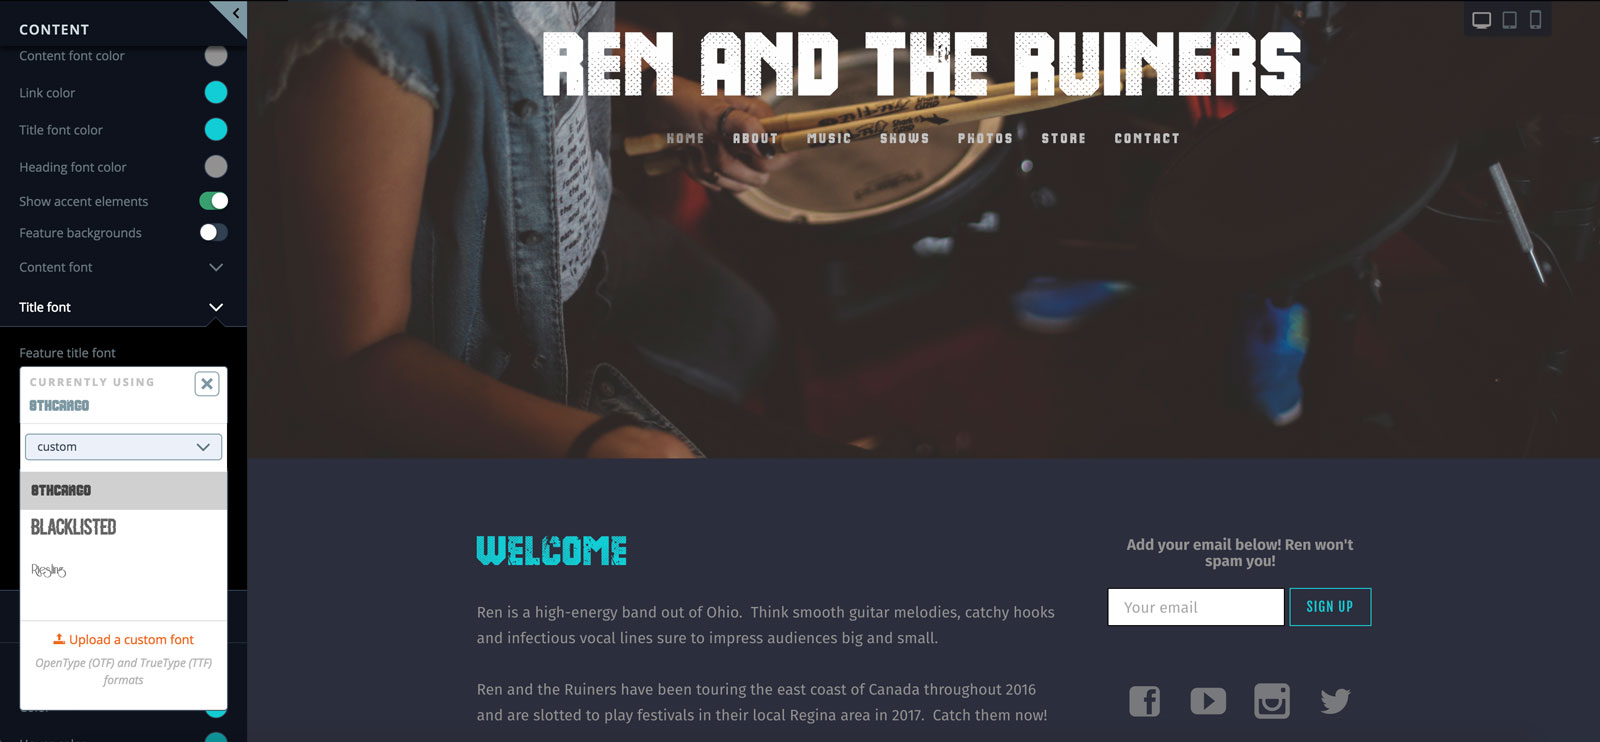 Upload a custom font to your band website